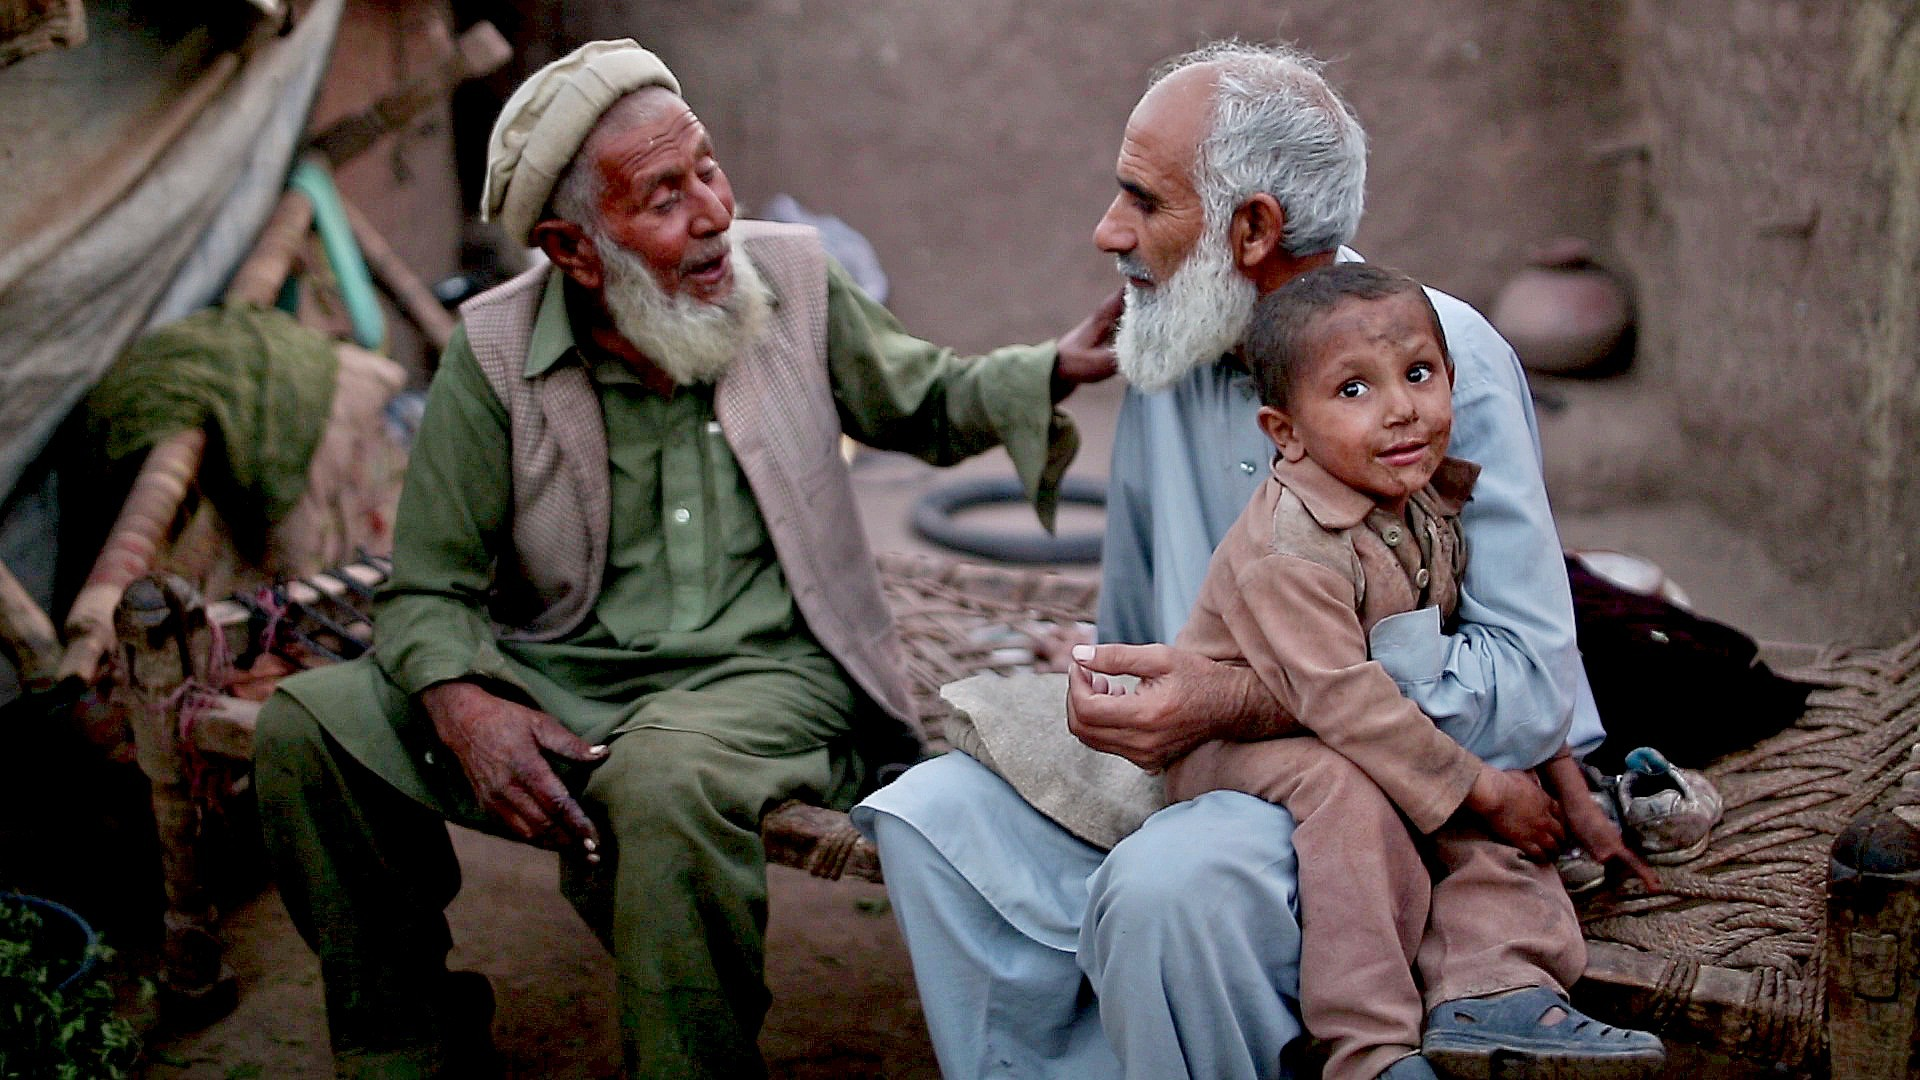 The documentary's protagonist is Baba, a refugee in Jalozai, who just wants to go home to the Tirah valley